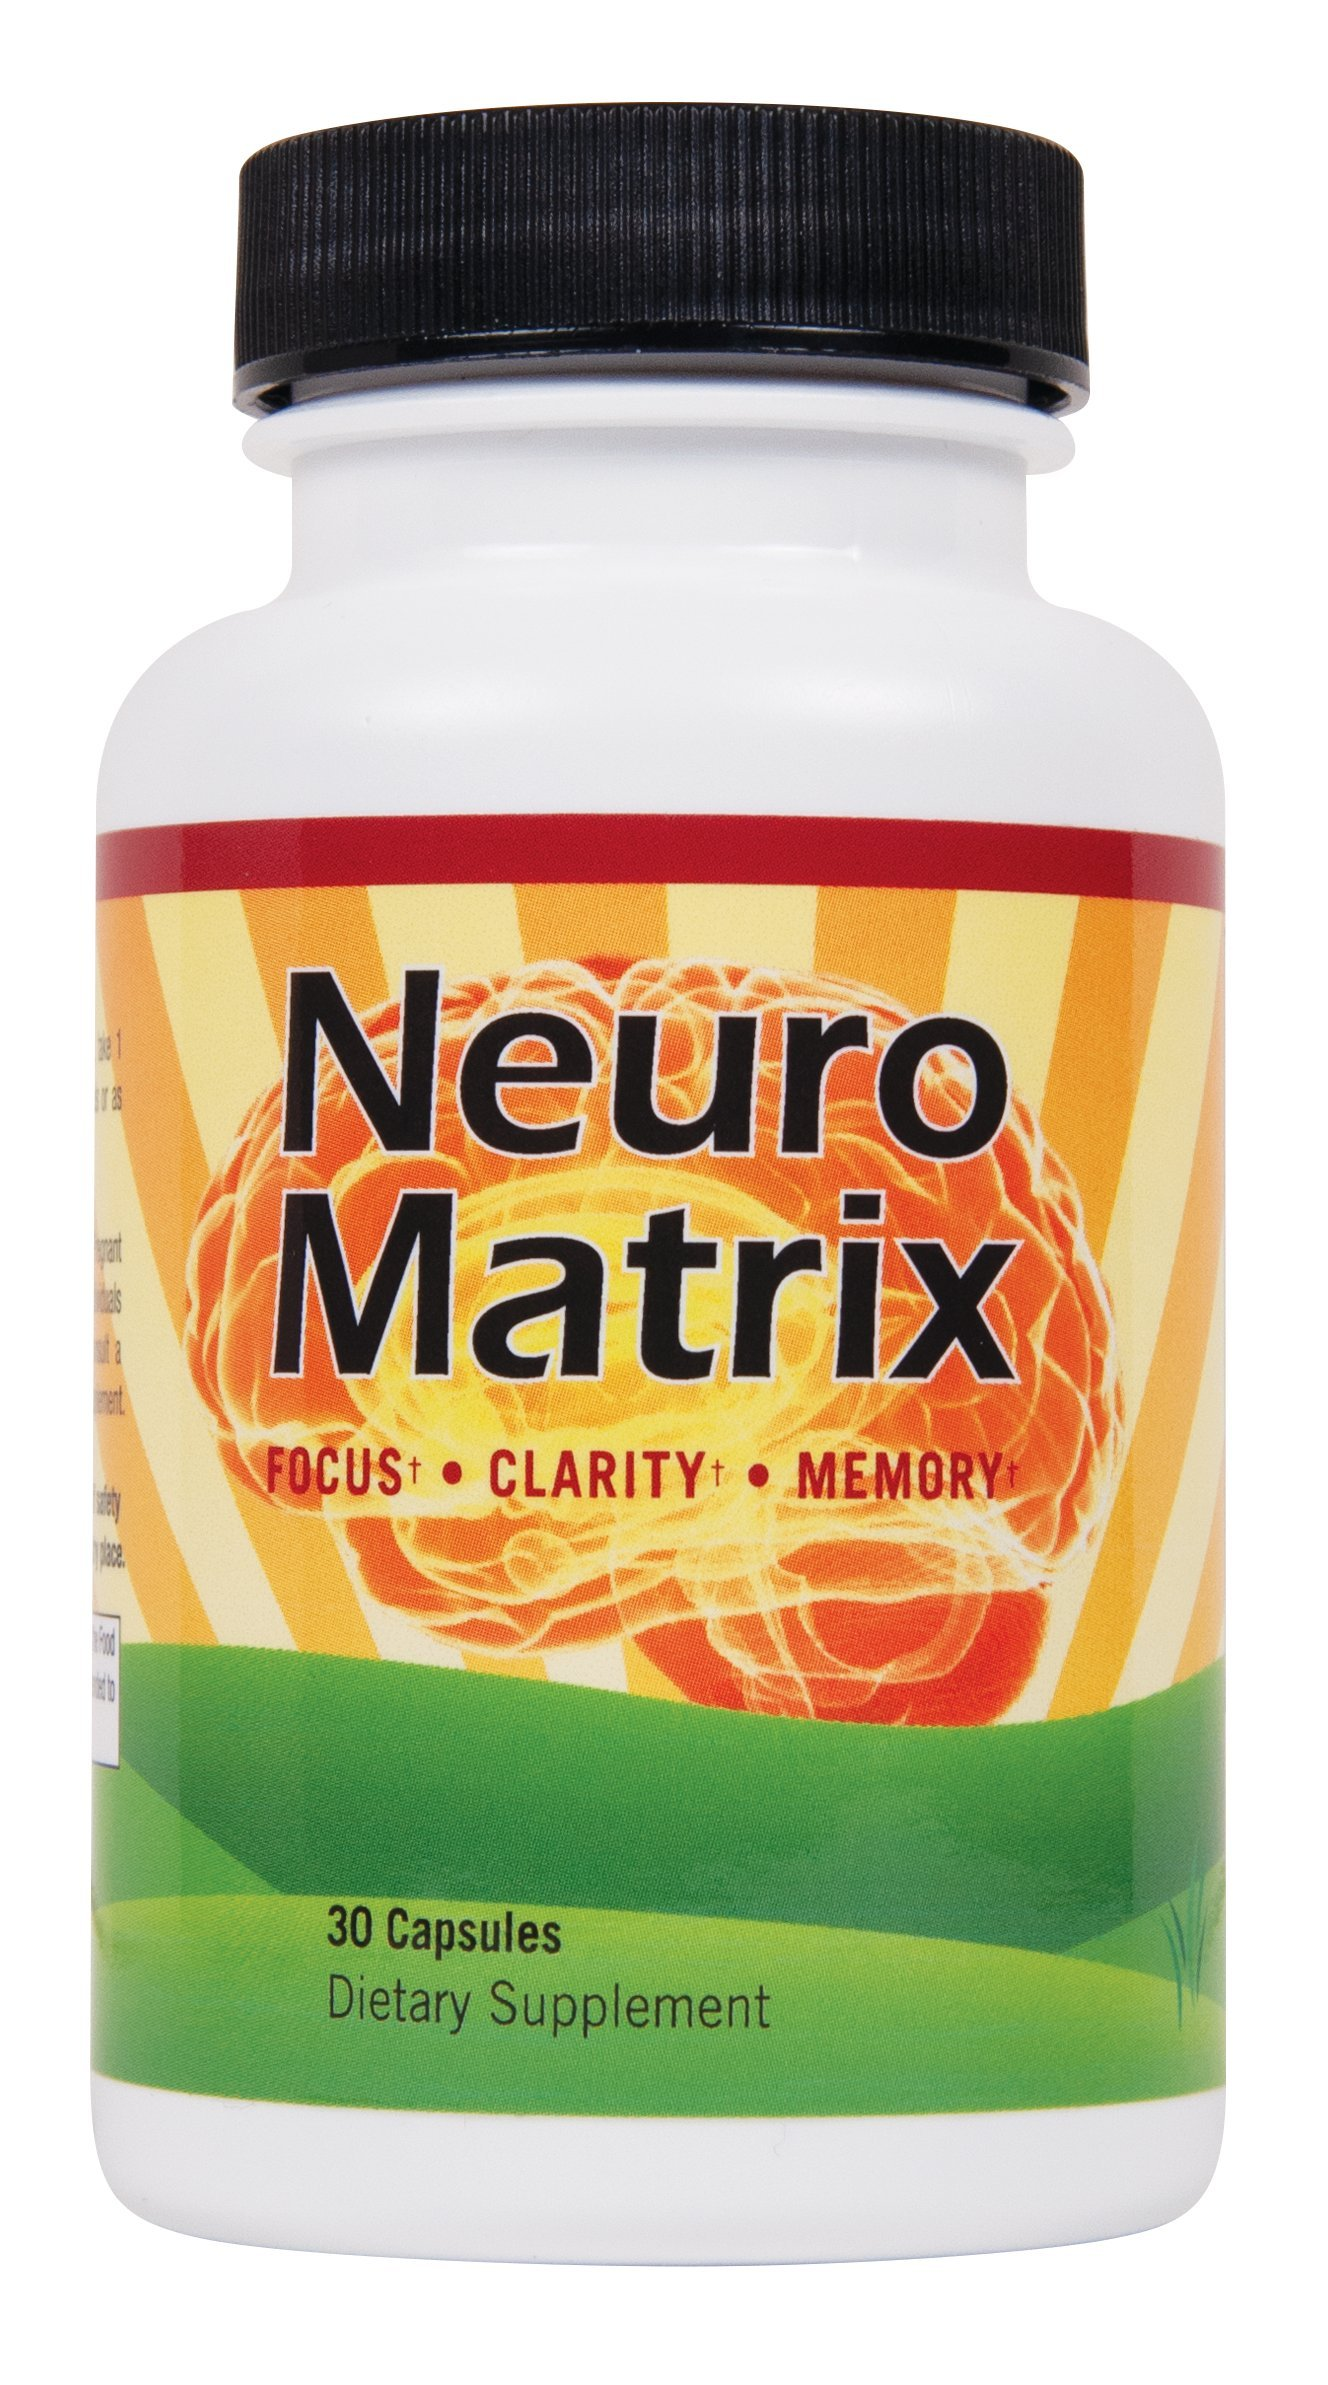 Ultimate Brain Supplement for Memory, Focus & Clarity-Nootropics Formula for Peak Mental Performance-Rhodiola Rosea, DMAE, Ginkgo Biloba, Acetyl L-Carnitine, Lion's Mane, Bacopa, Huperzine by Mountain Health